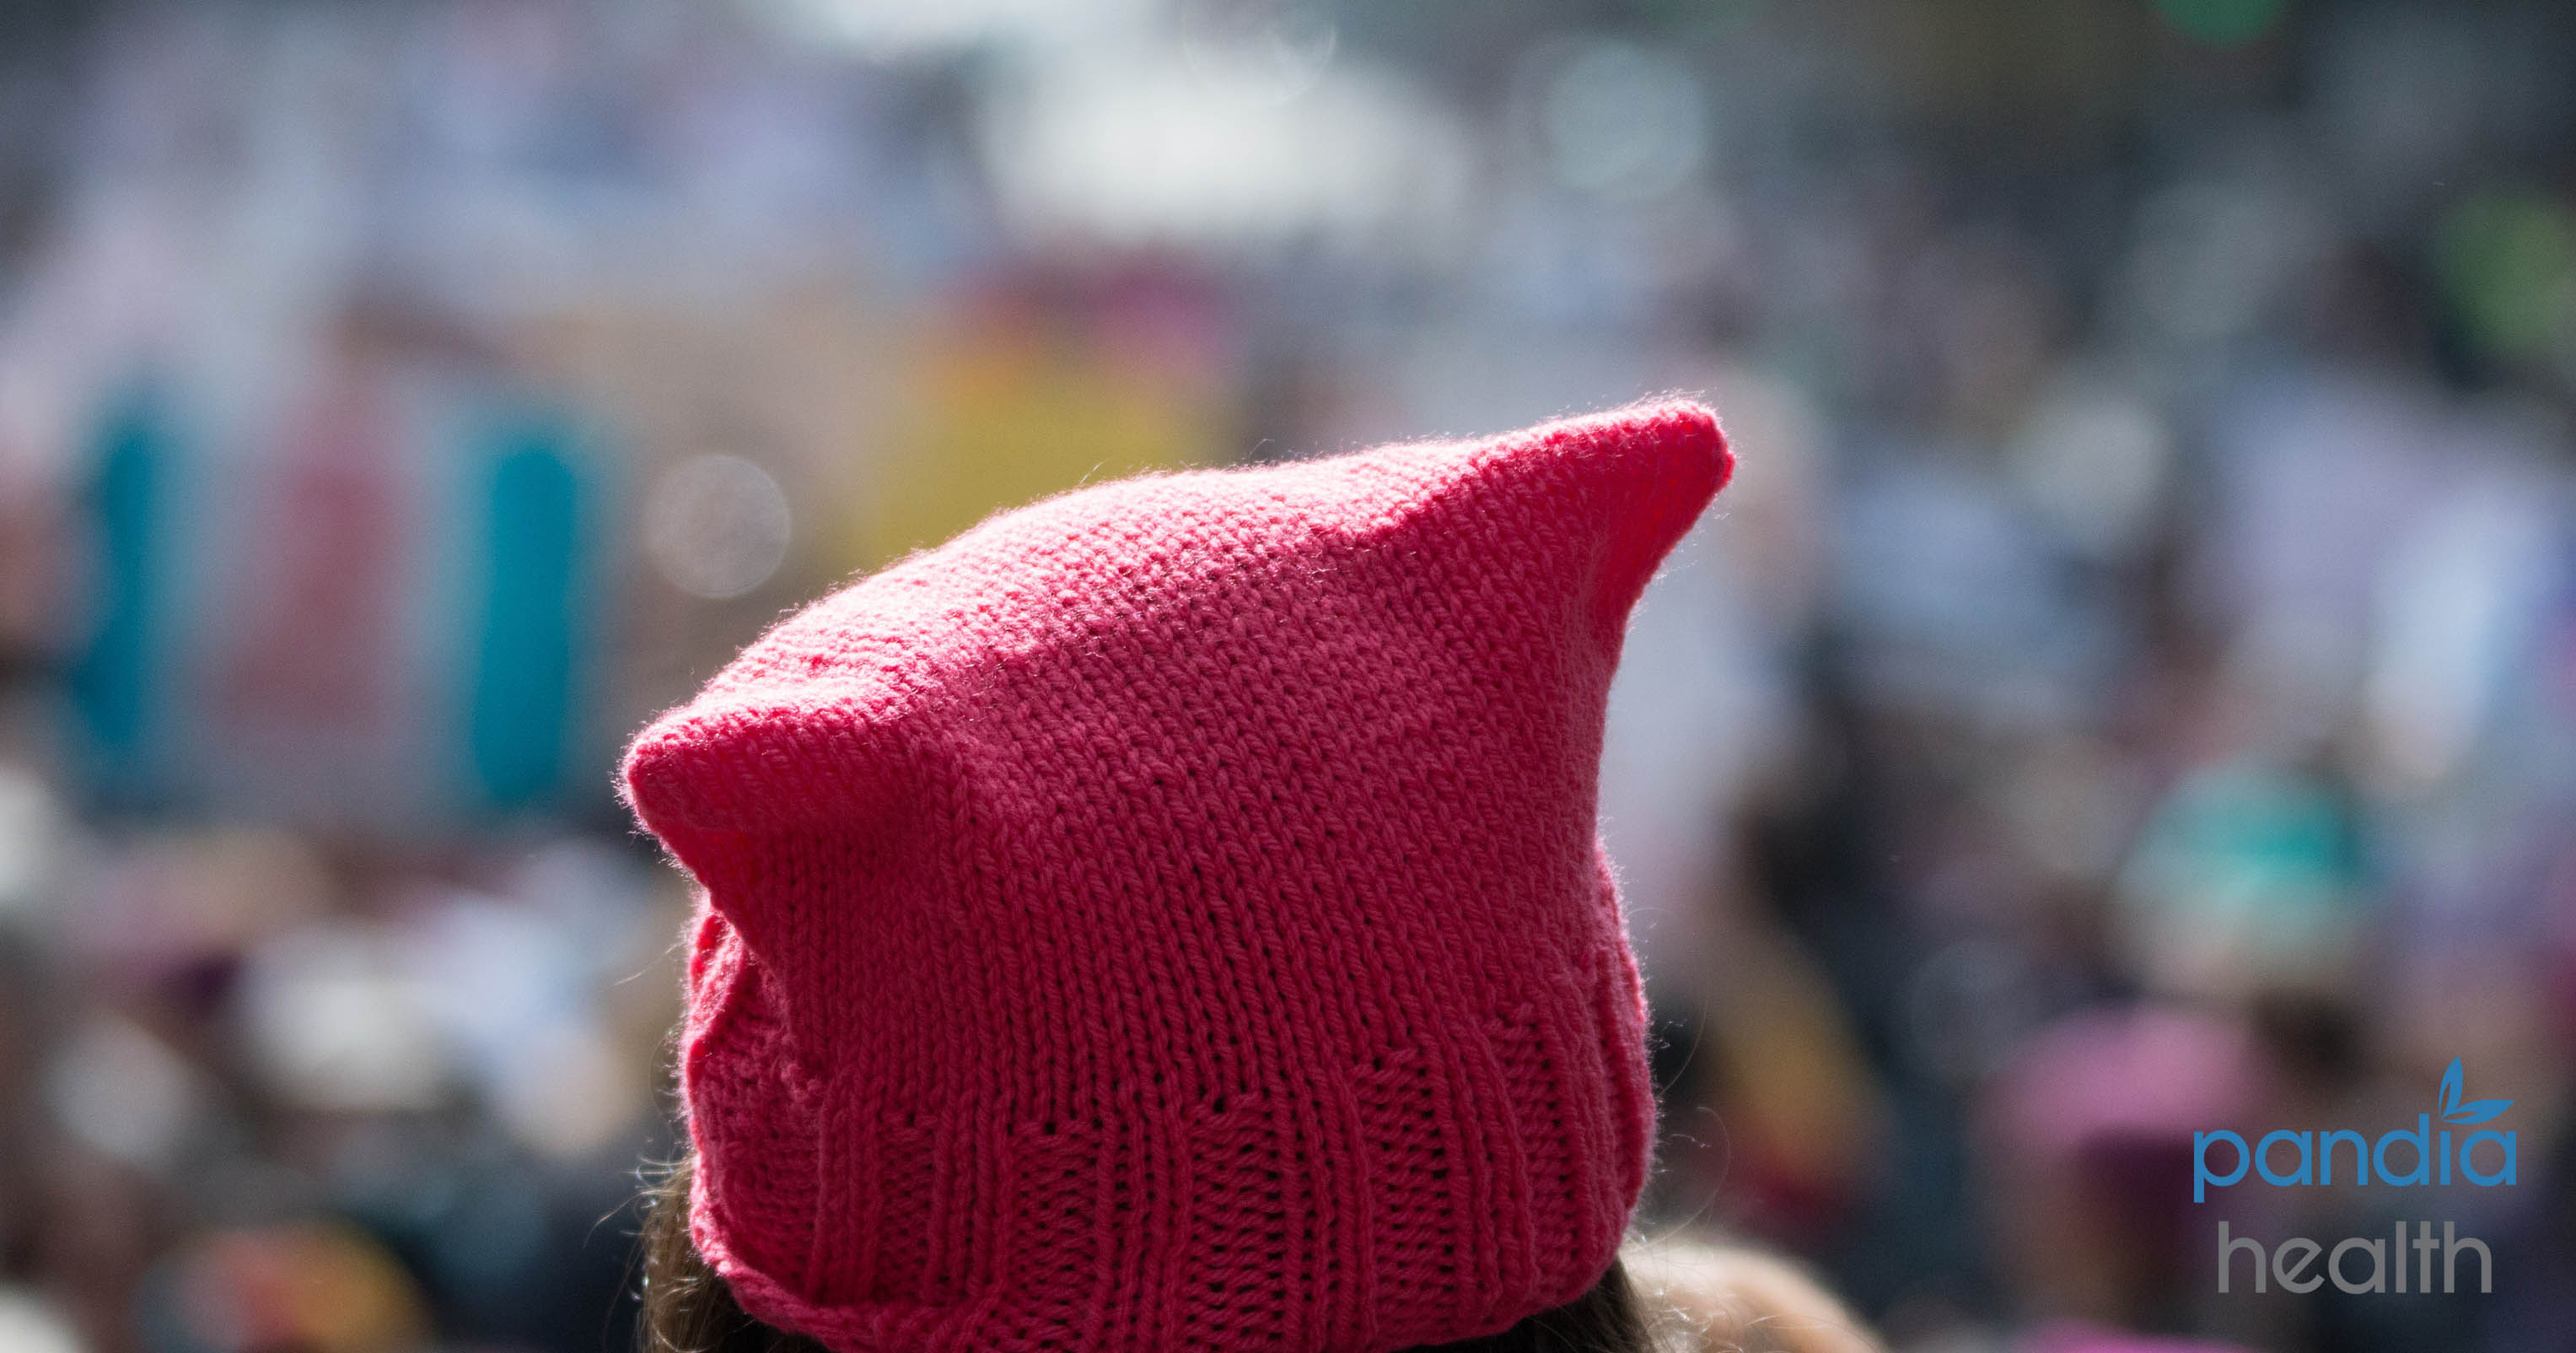 Women's march pink pussyhat